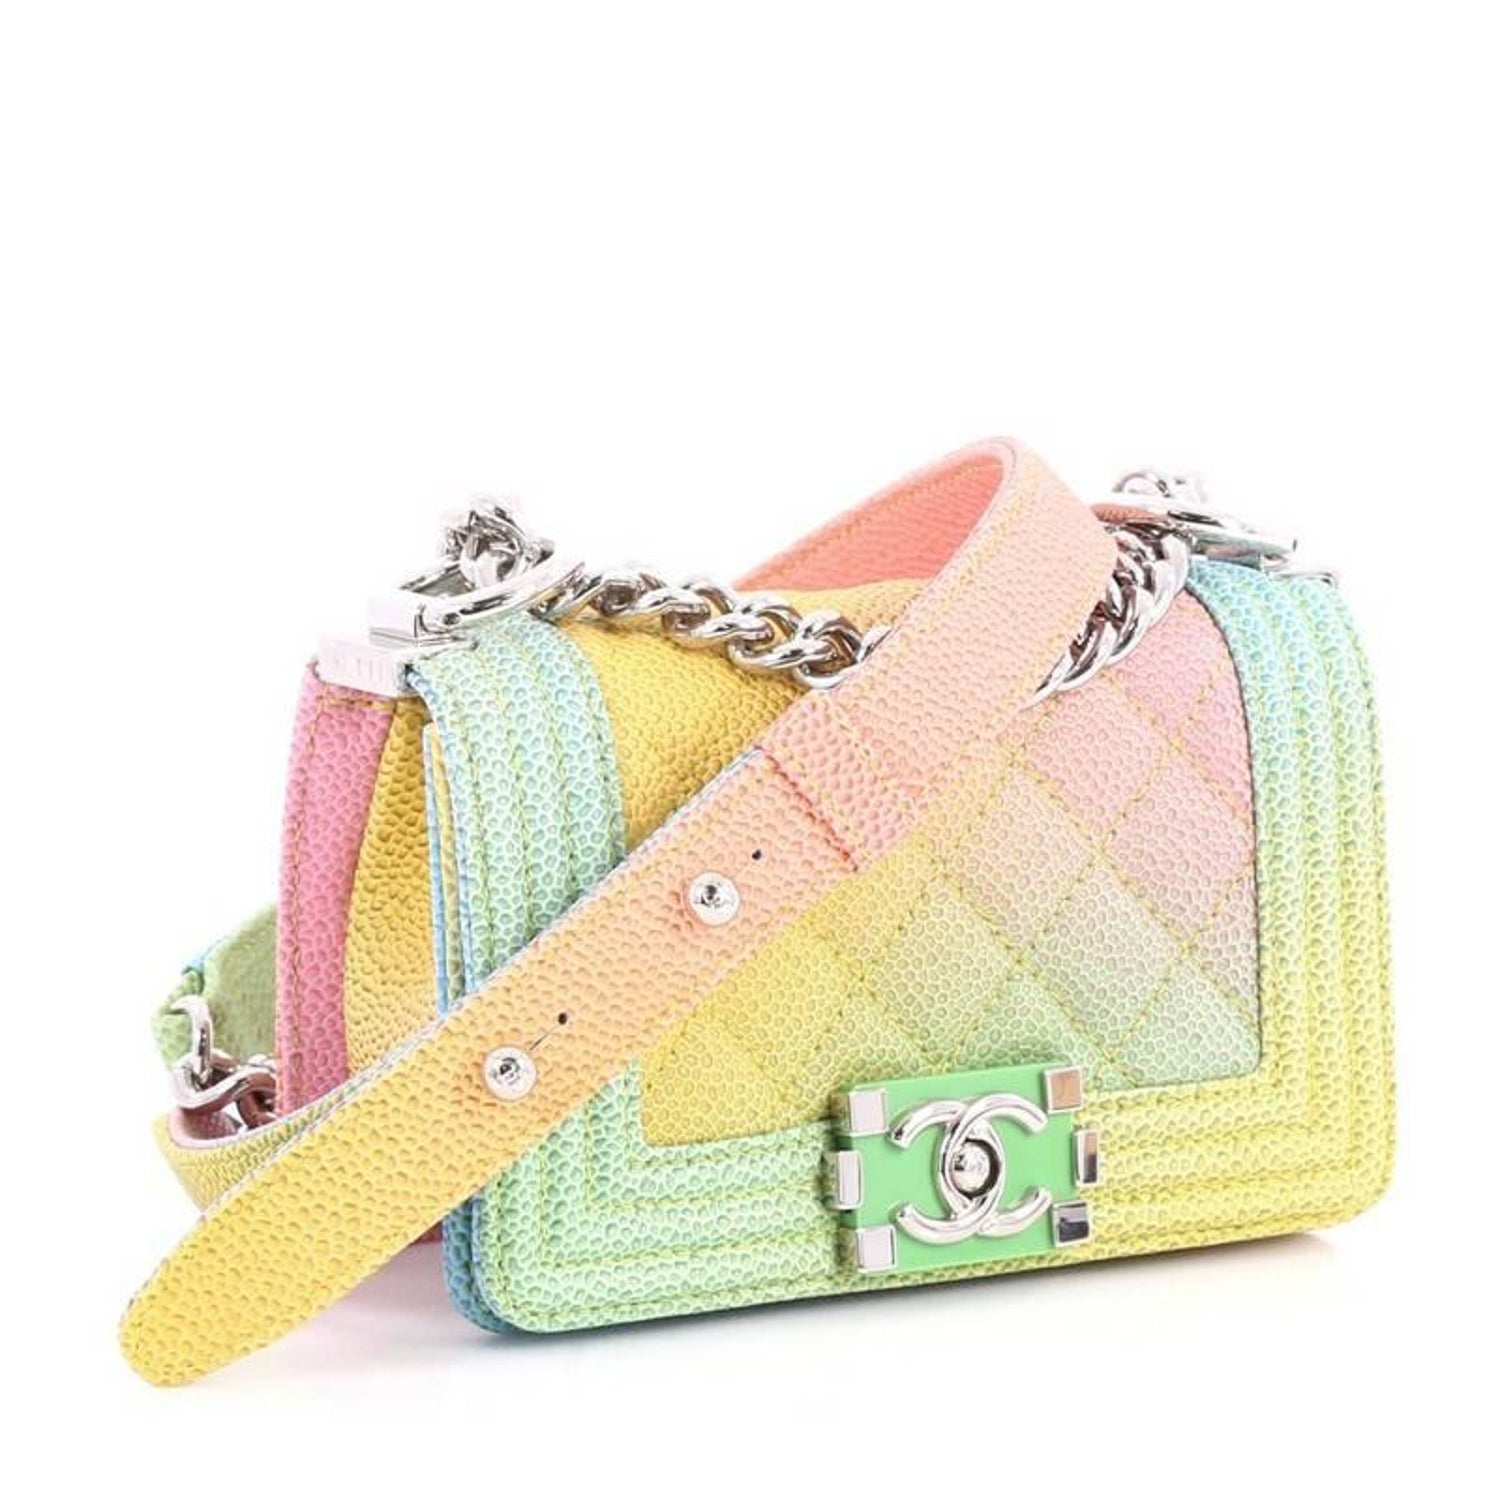 046bc2f5645b Chanel Cuba Rainbow Boy Flap Bag Quilted Painted Caviar Mini at 1stdibs